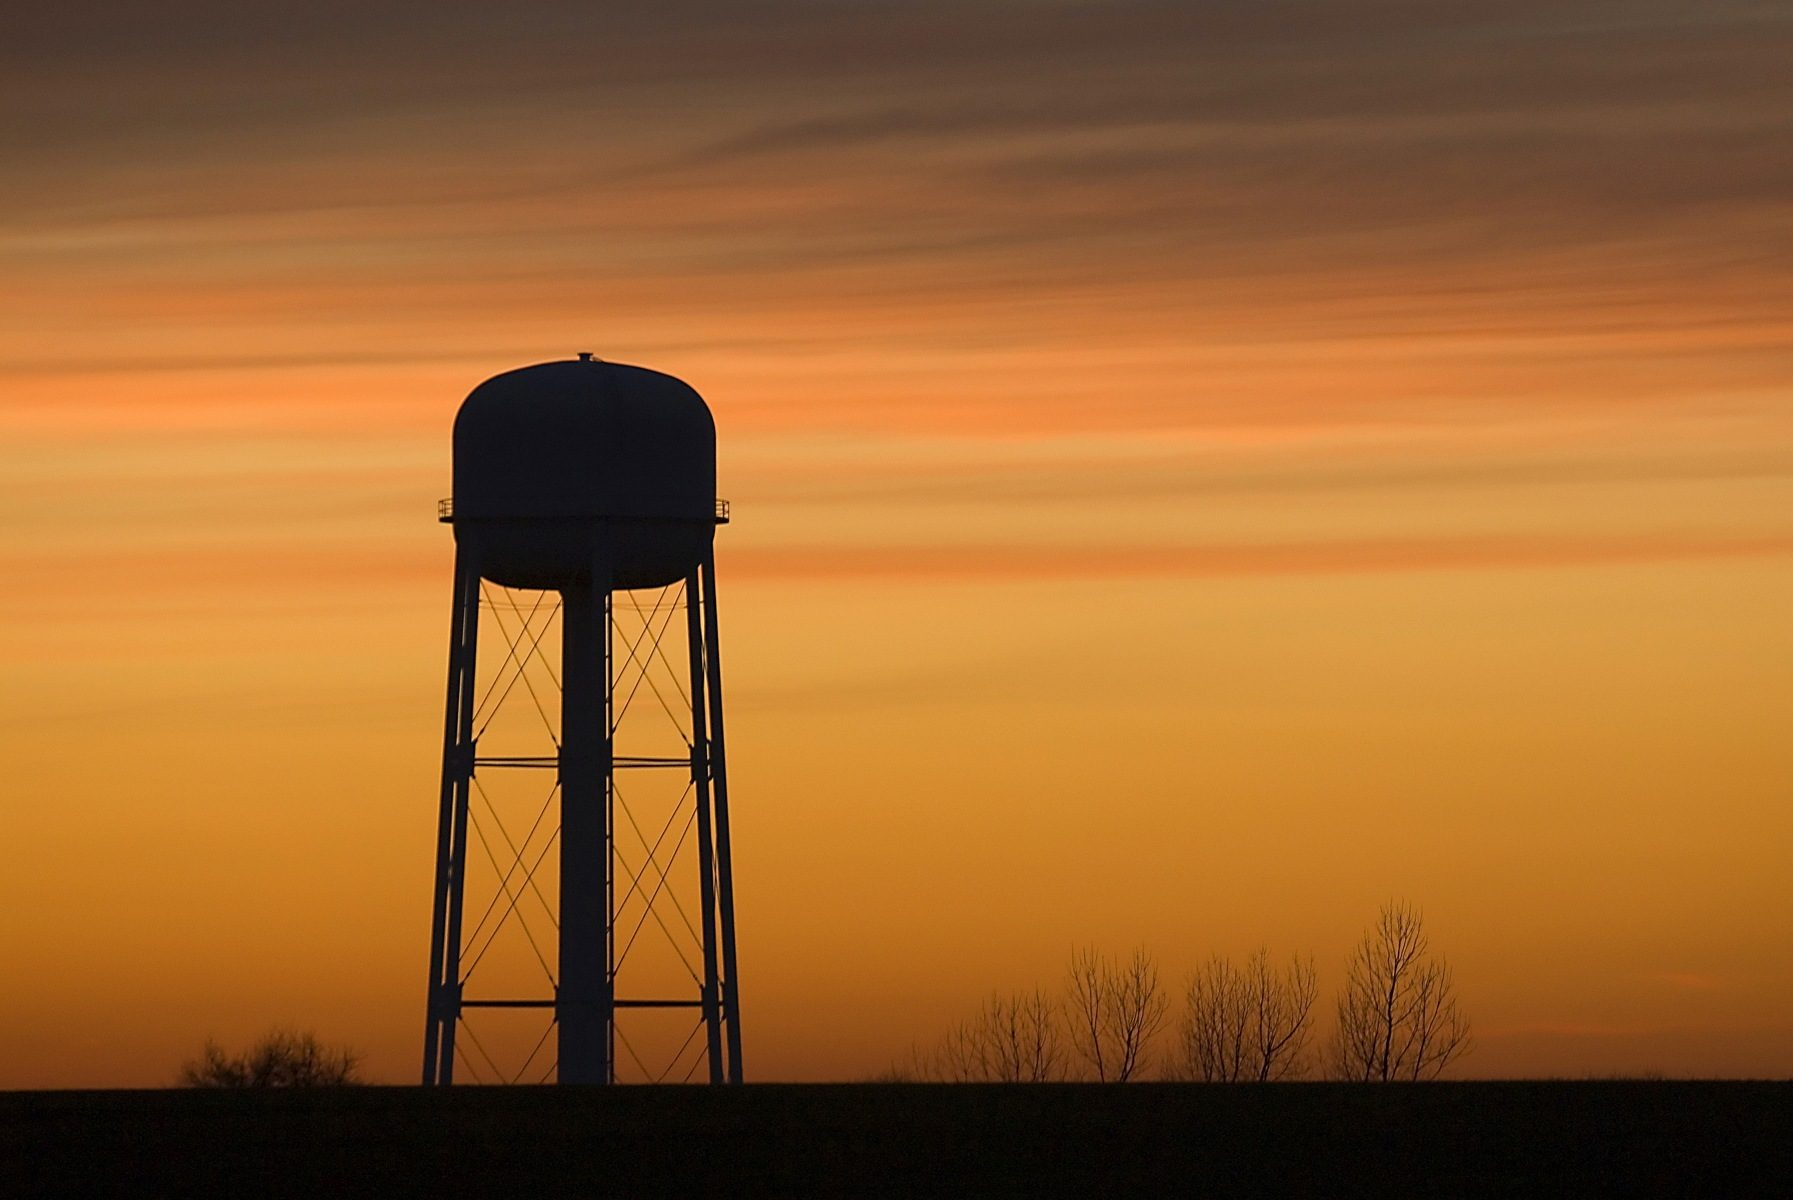 A water tower at sunset.